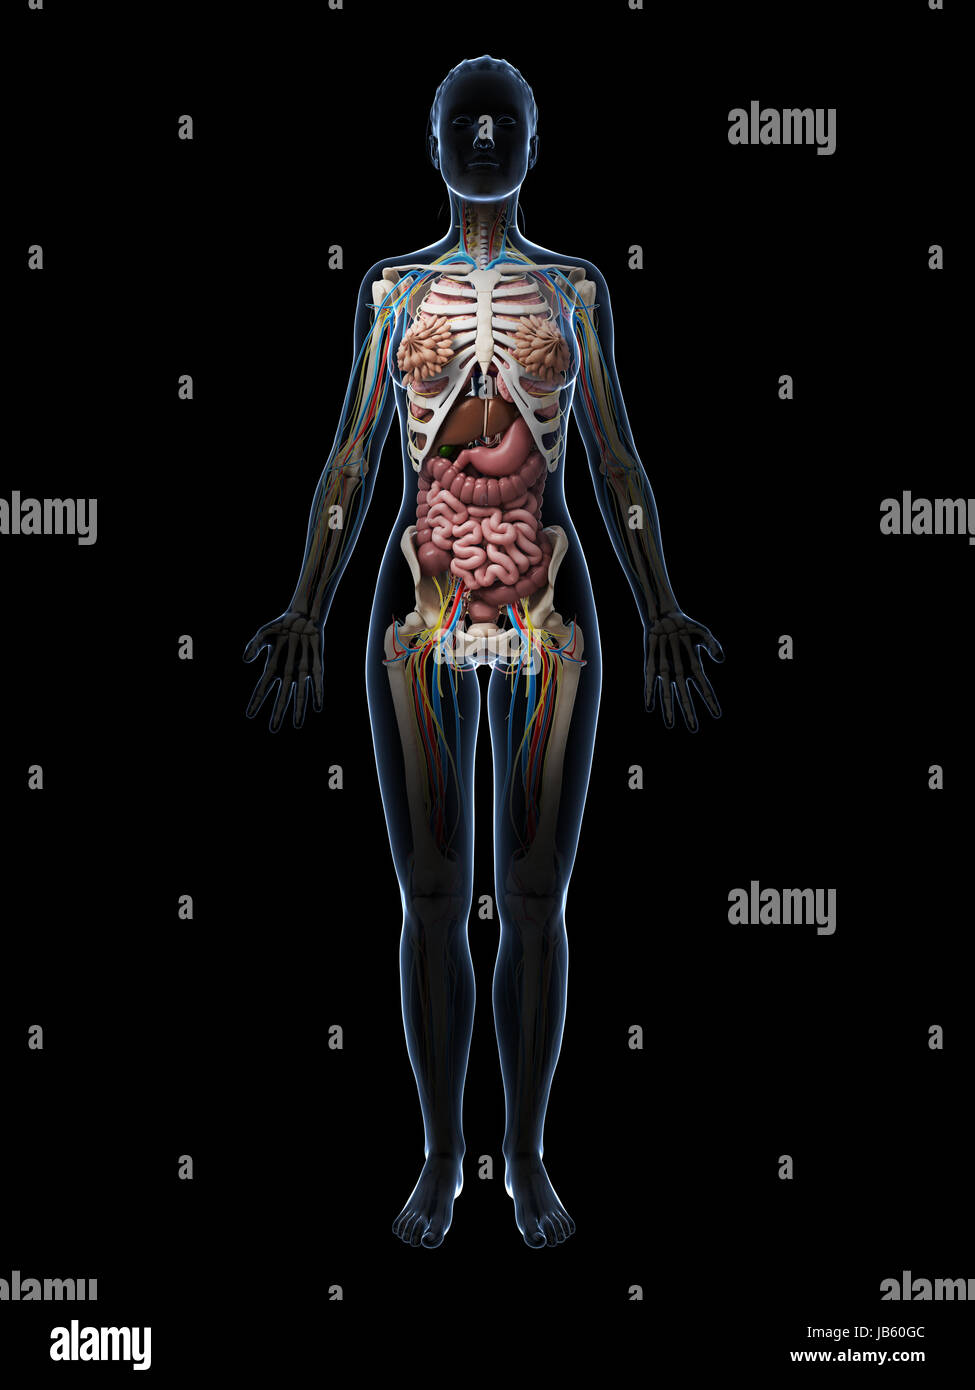 Uterus Diagram Stockfotos & Uterus Diagram Bilder - Alamy